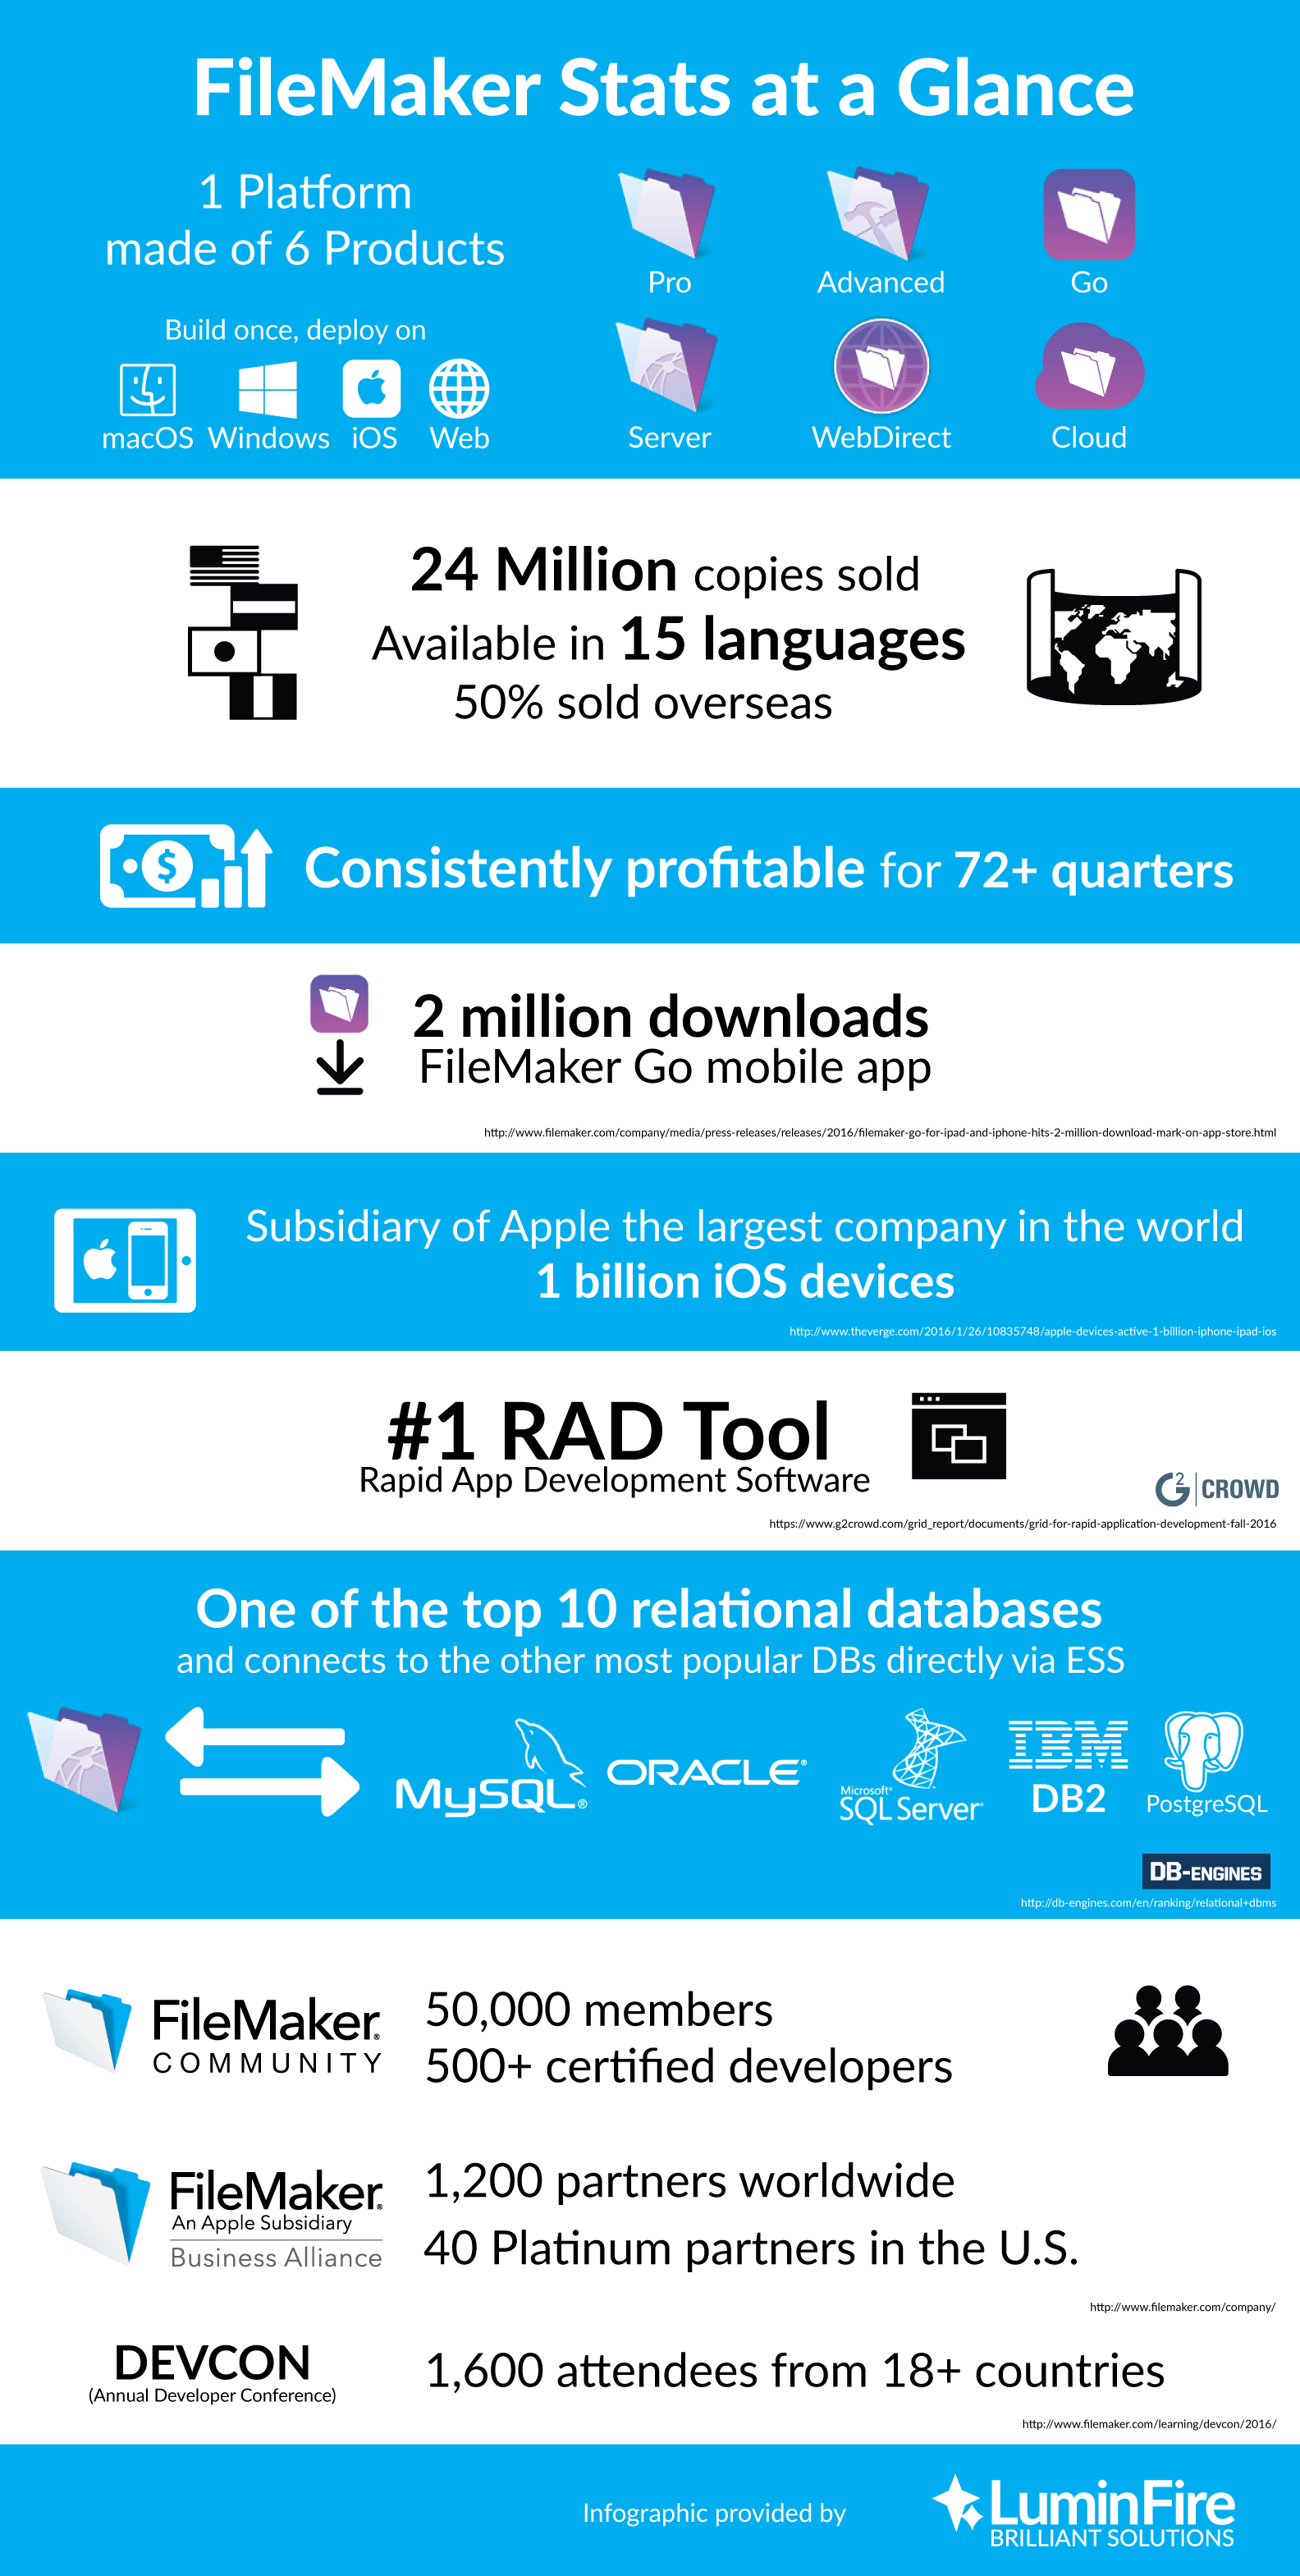 FileMaker Stats at a Glance Infographic